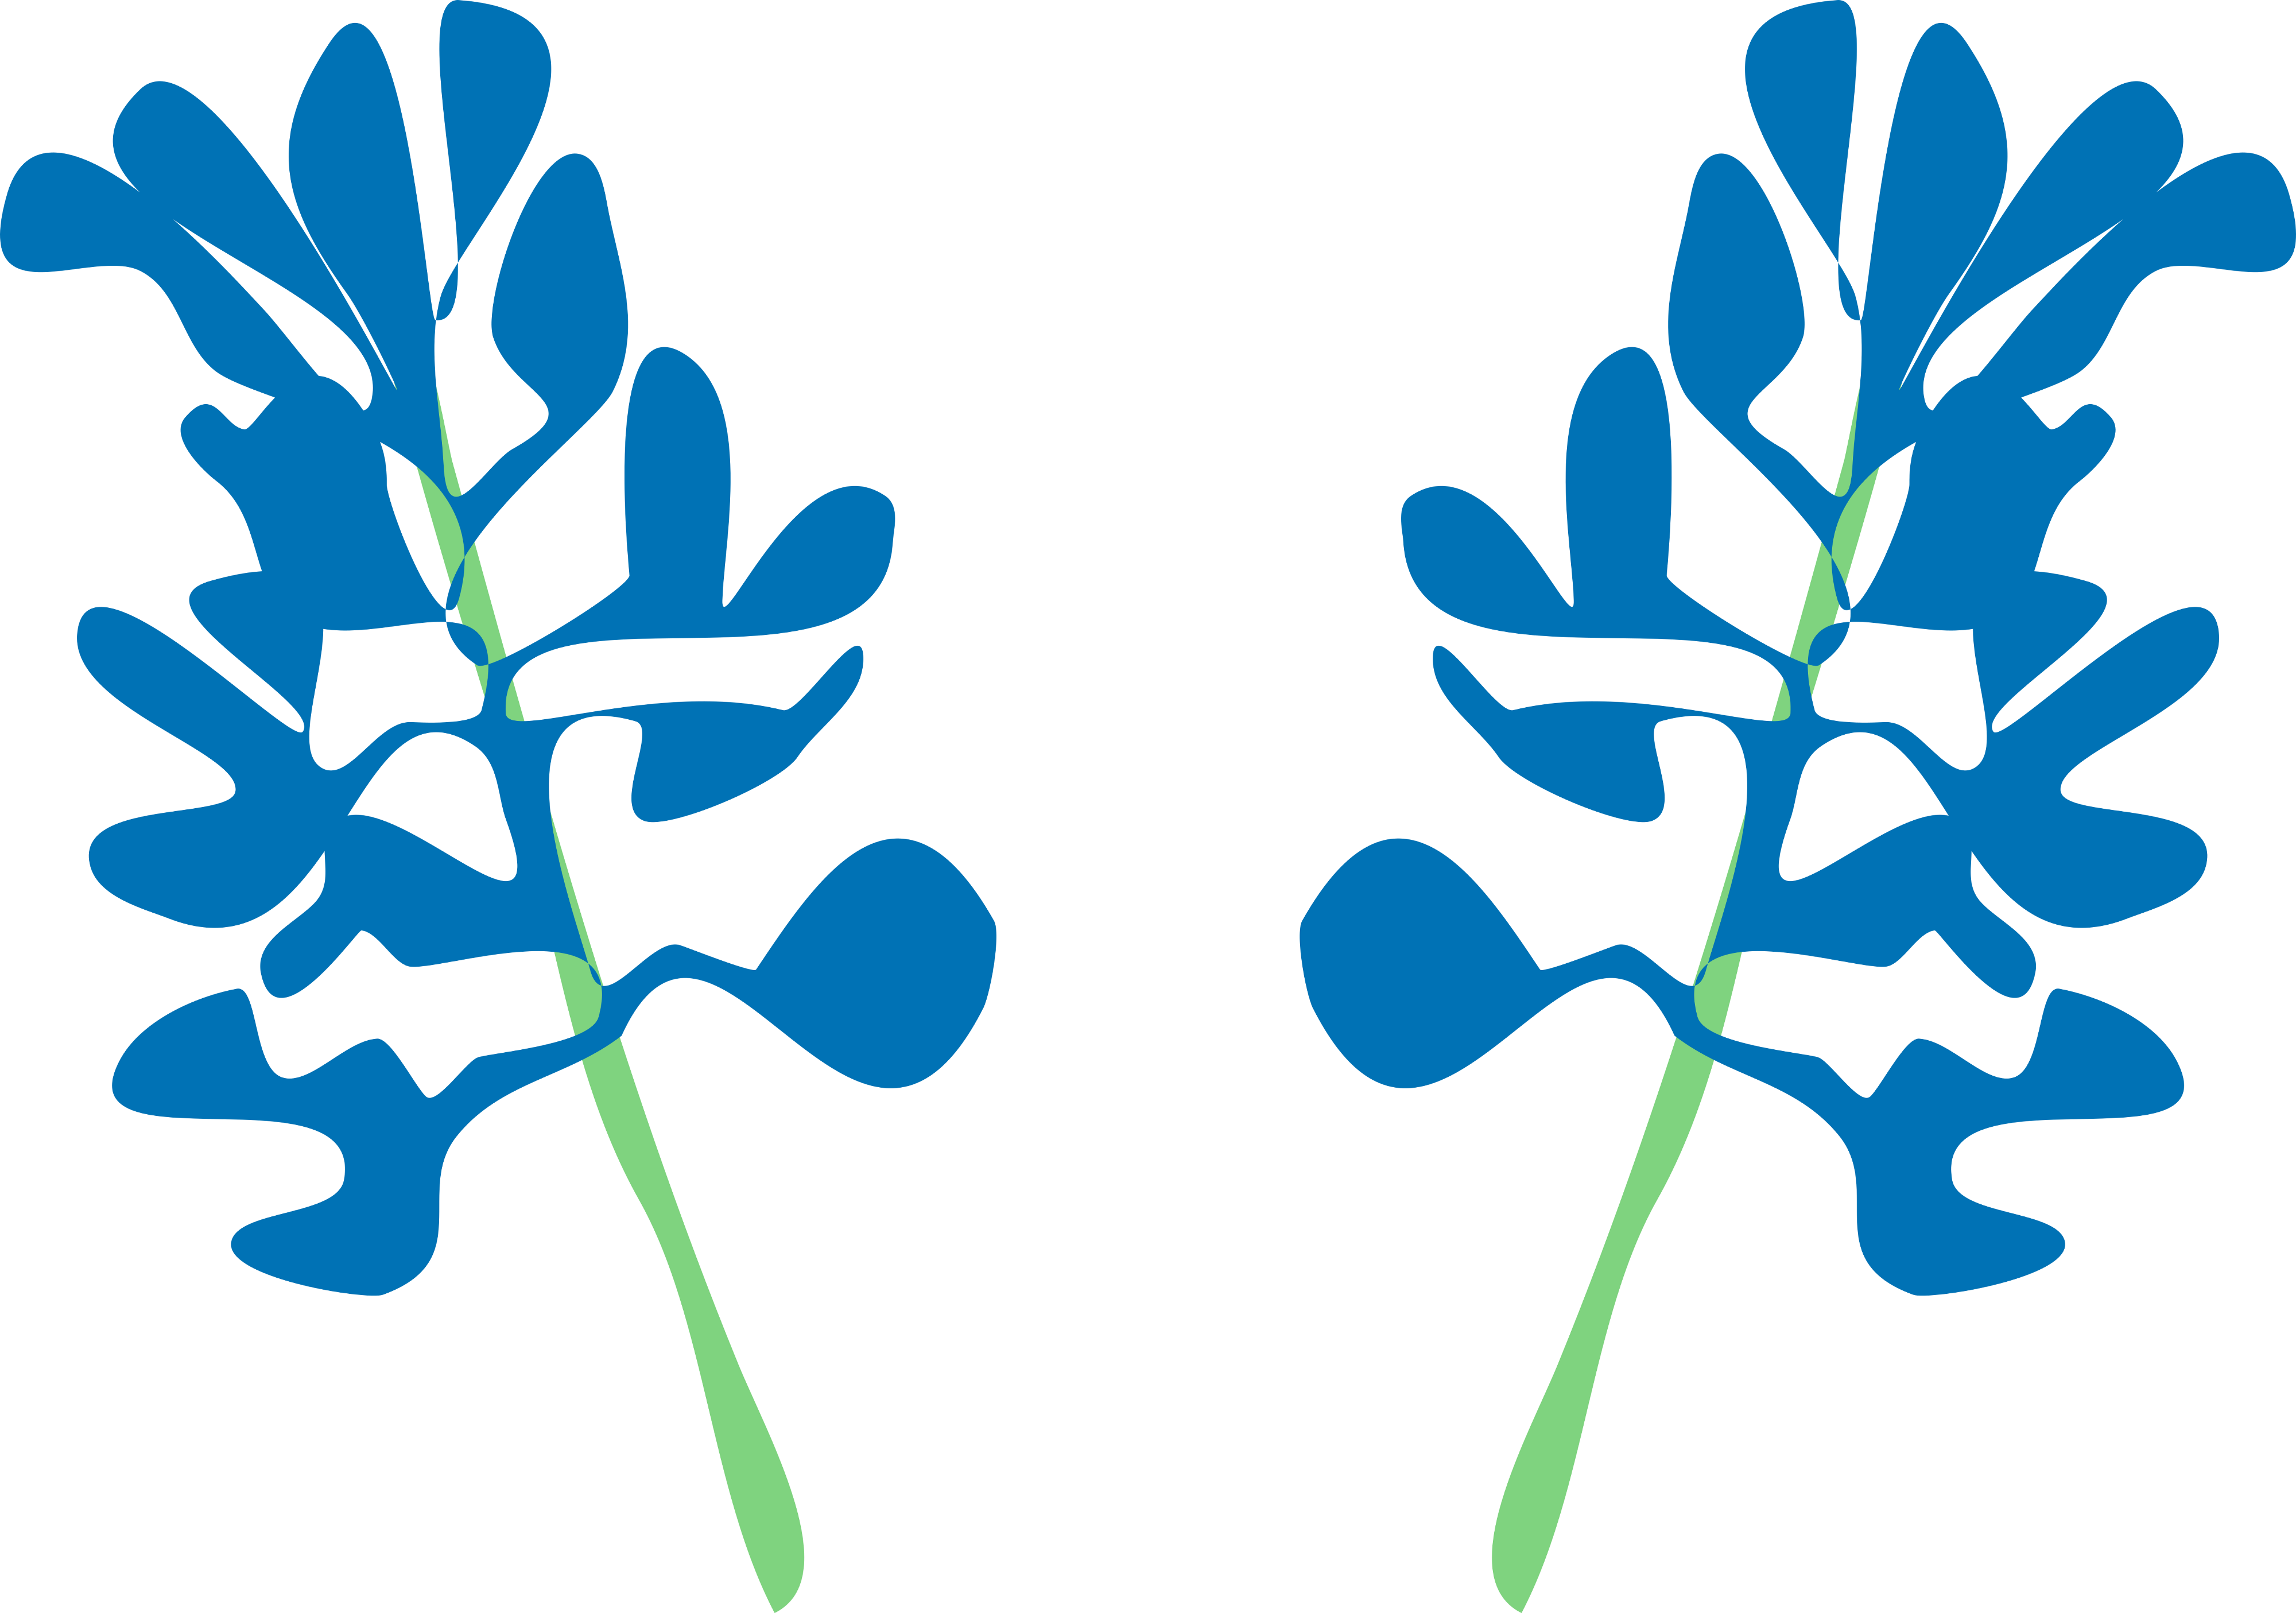 abstract illustration of bluebonnet flowers